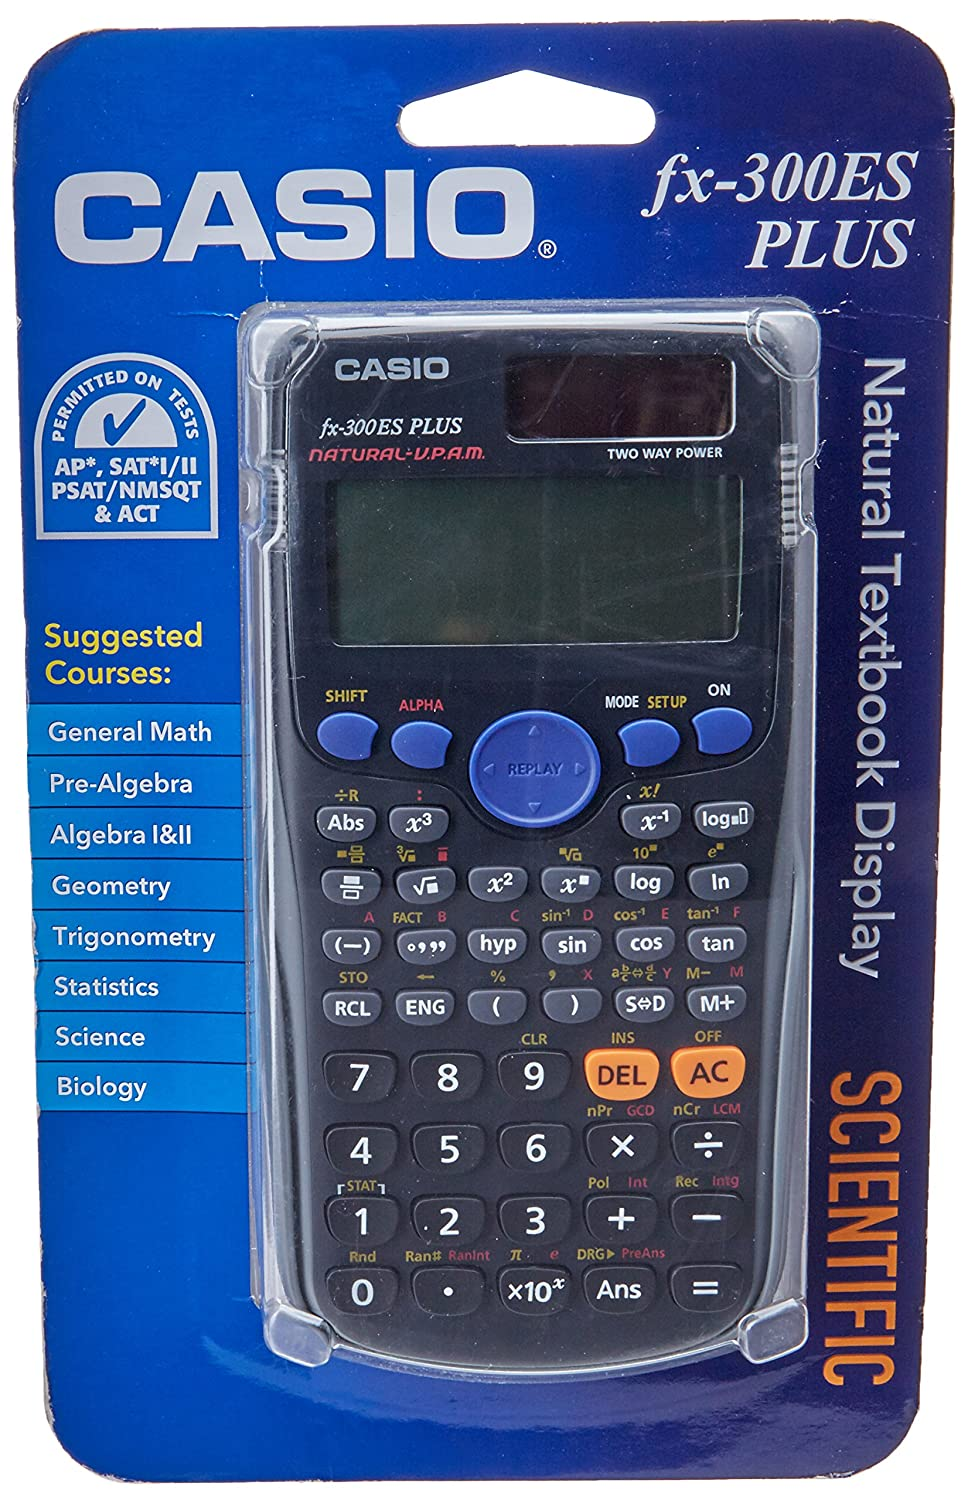 Amazon.com: Casio fx-300ES PLUS Scientific Calculator, Black: Electronics